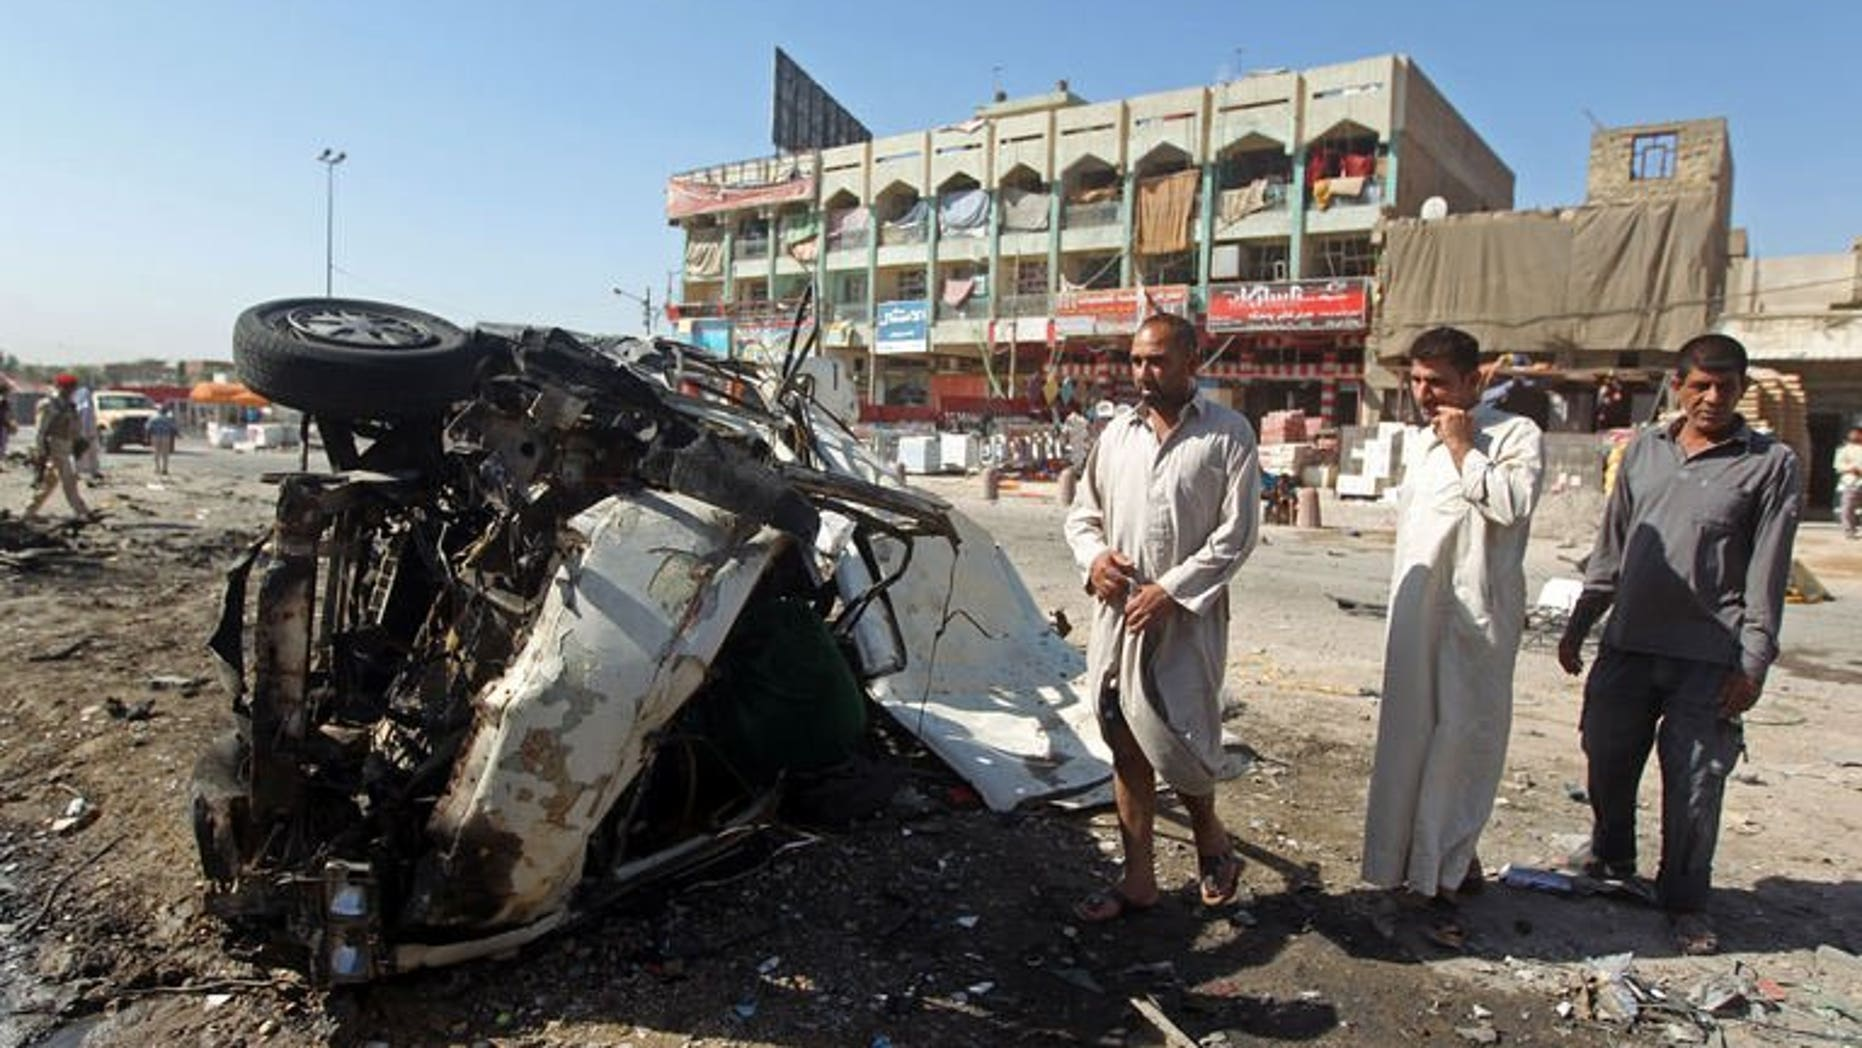 Iraqis inspect the site of a car bomb explosion in the impoverished district of Sadr City in Baghdad on July 29, 2013. Iraq violence kills 989 in July, the highest monthly since 2008, said the government on July 31, 2013.